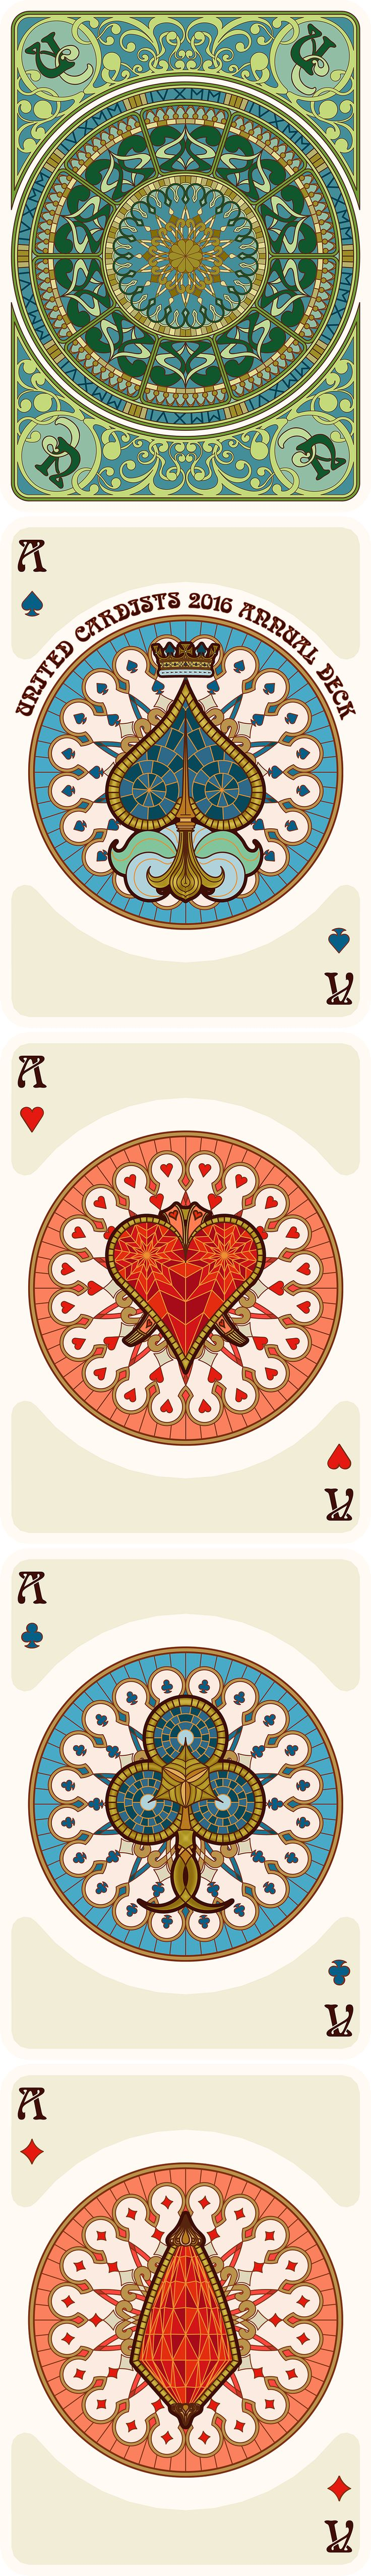 Poker club names ideas - Downloads roulette game